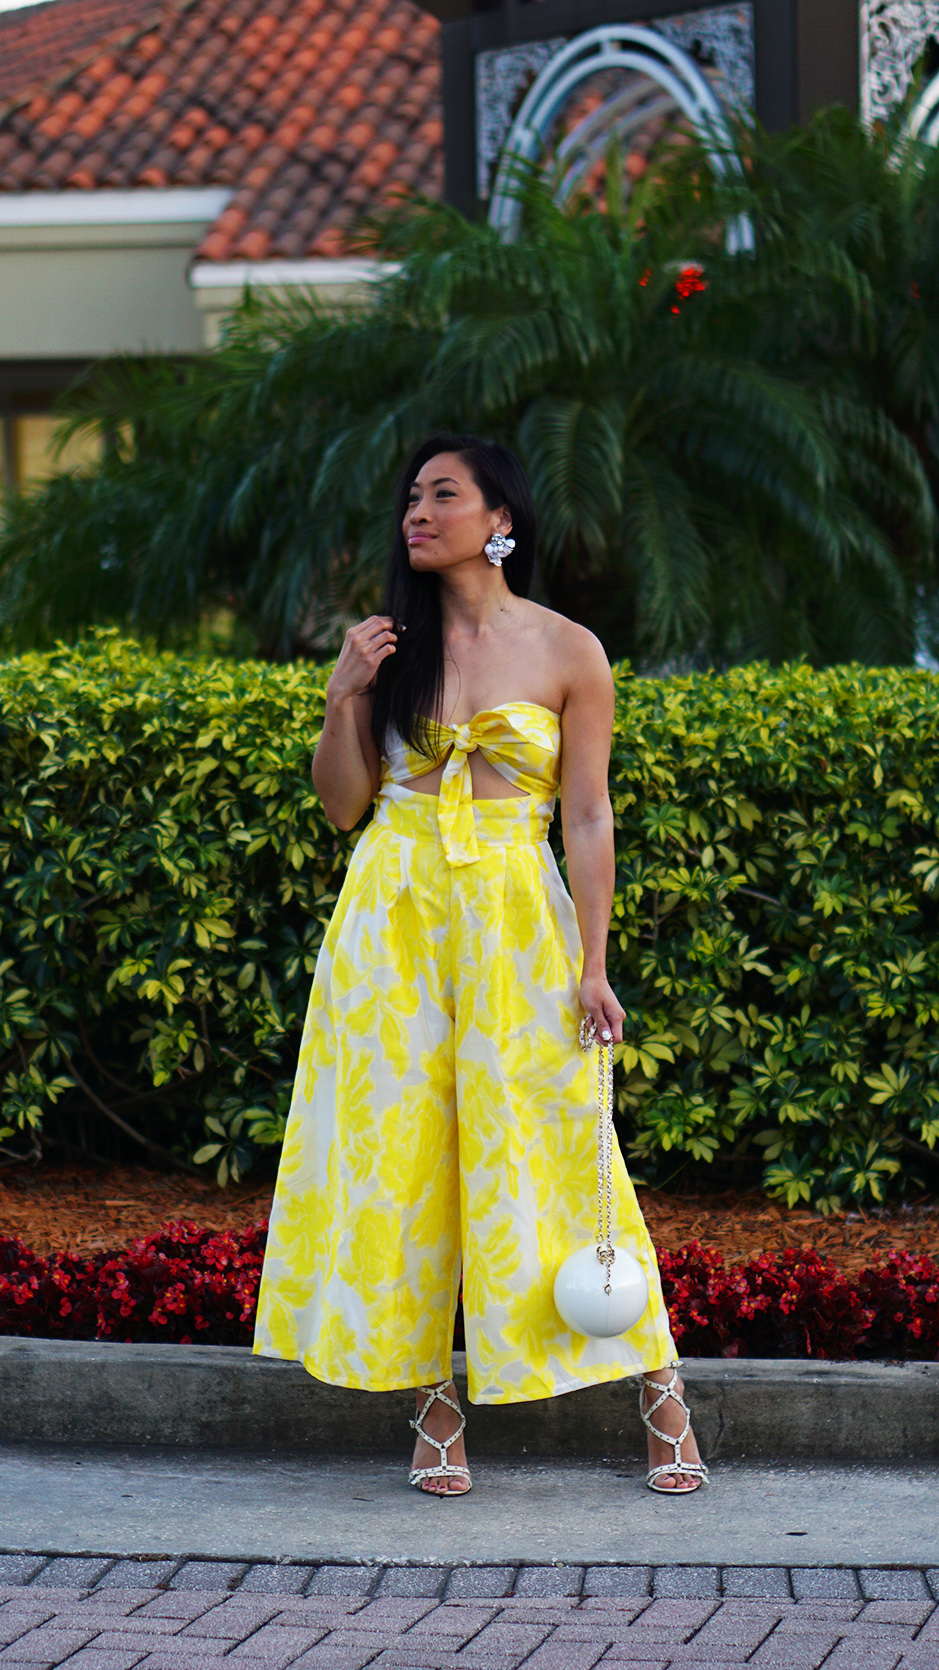 How to Elevate Your Outfit #styletips #outfittips #fashiontips #yellowjumpsuit #brocadedress #pearlbag #valentinorockstud #streetstyle #outfitideas #fashionblog #styleblog #fashionista #outfitdetails #howto #luxurious #stylefinds